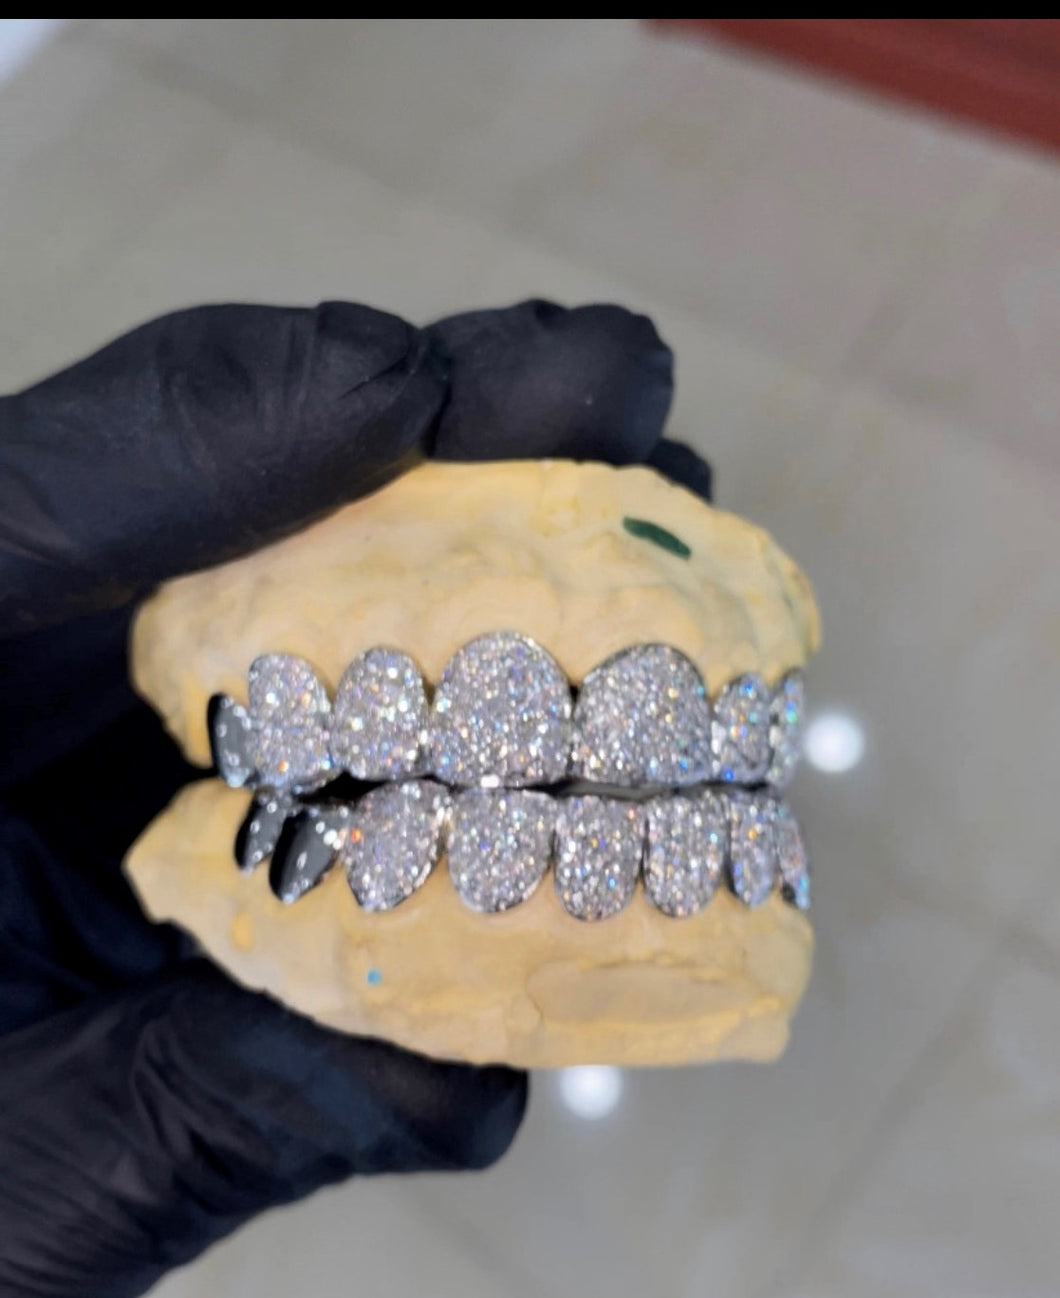 14K Vs Diamond Grill 16 Teeth